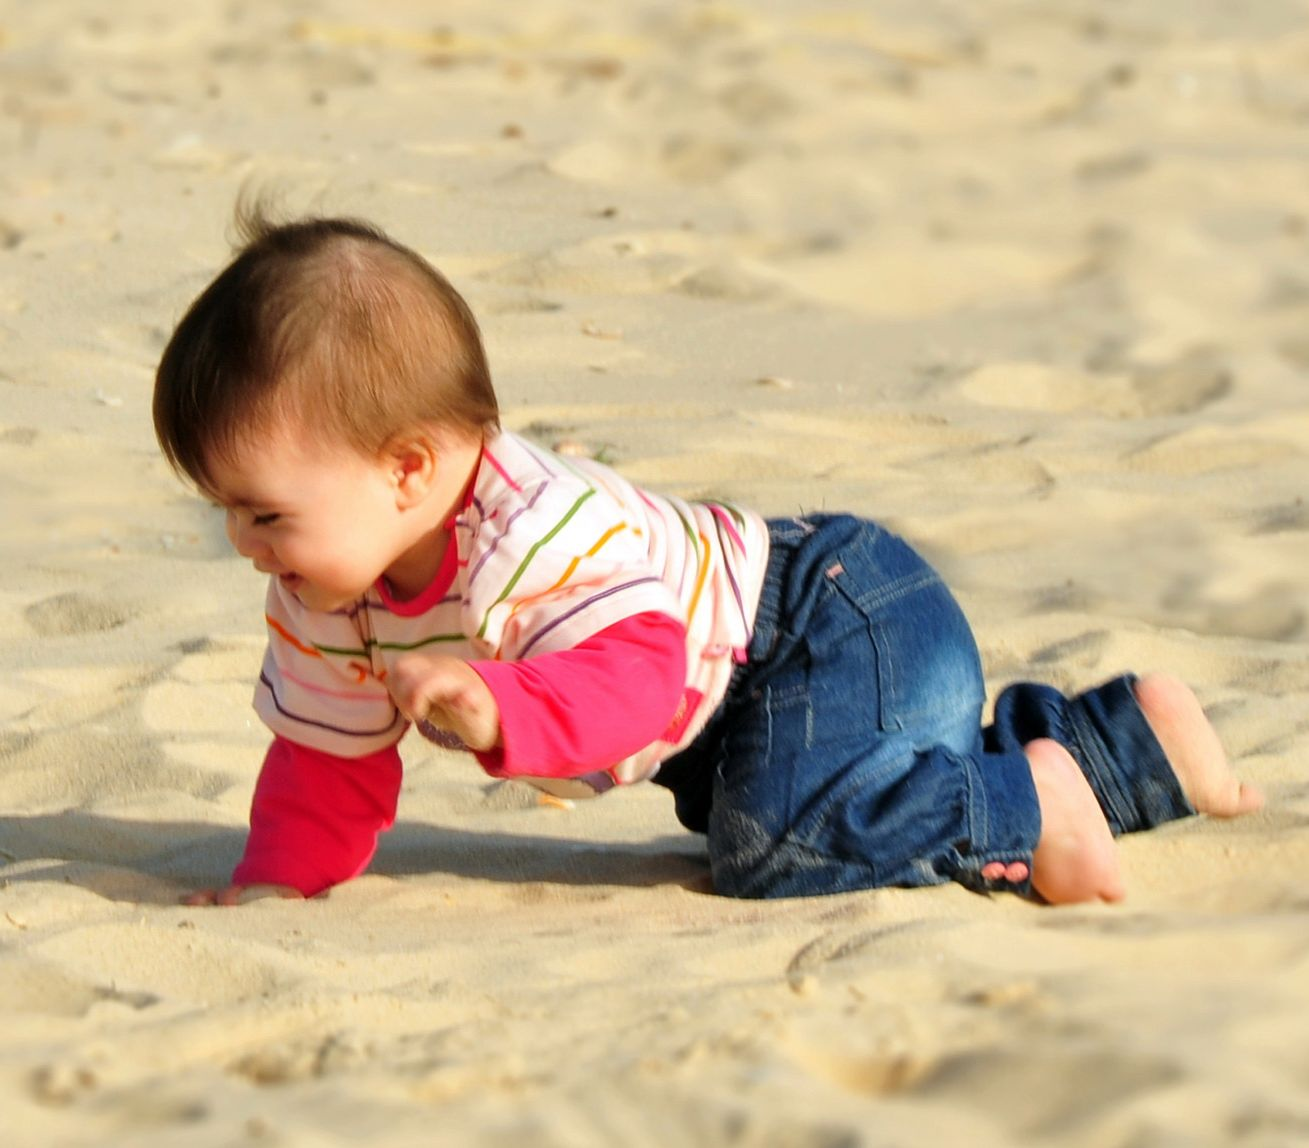 A baby crowl on a sandy beach.